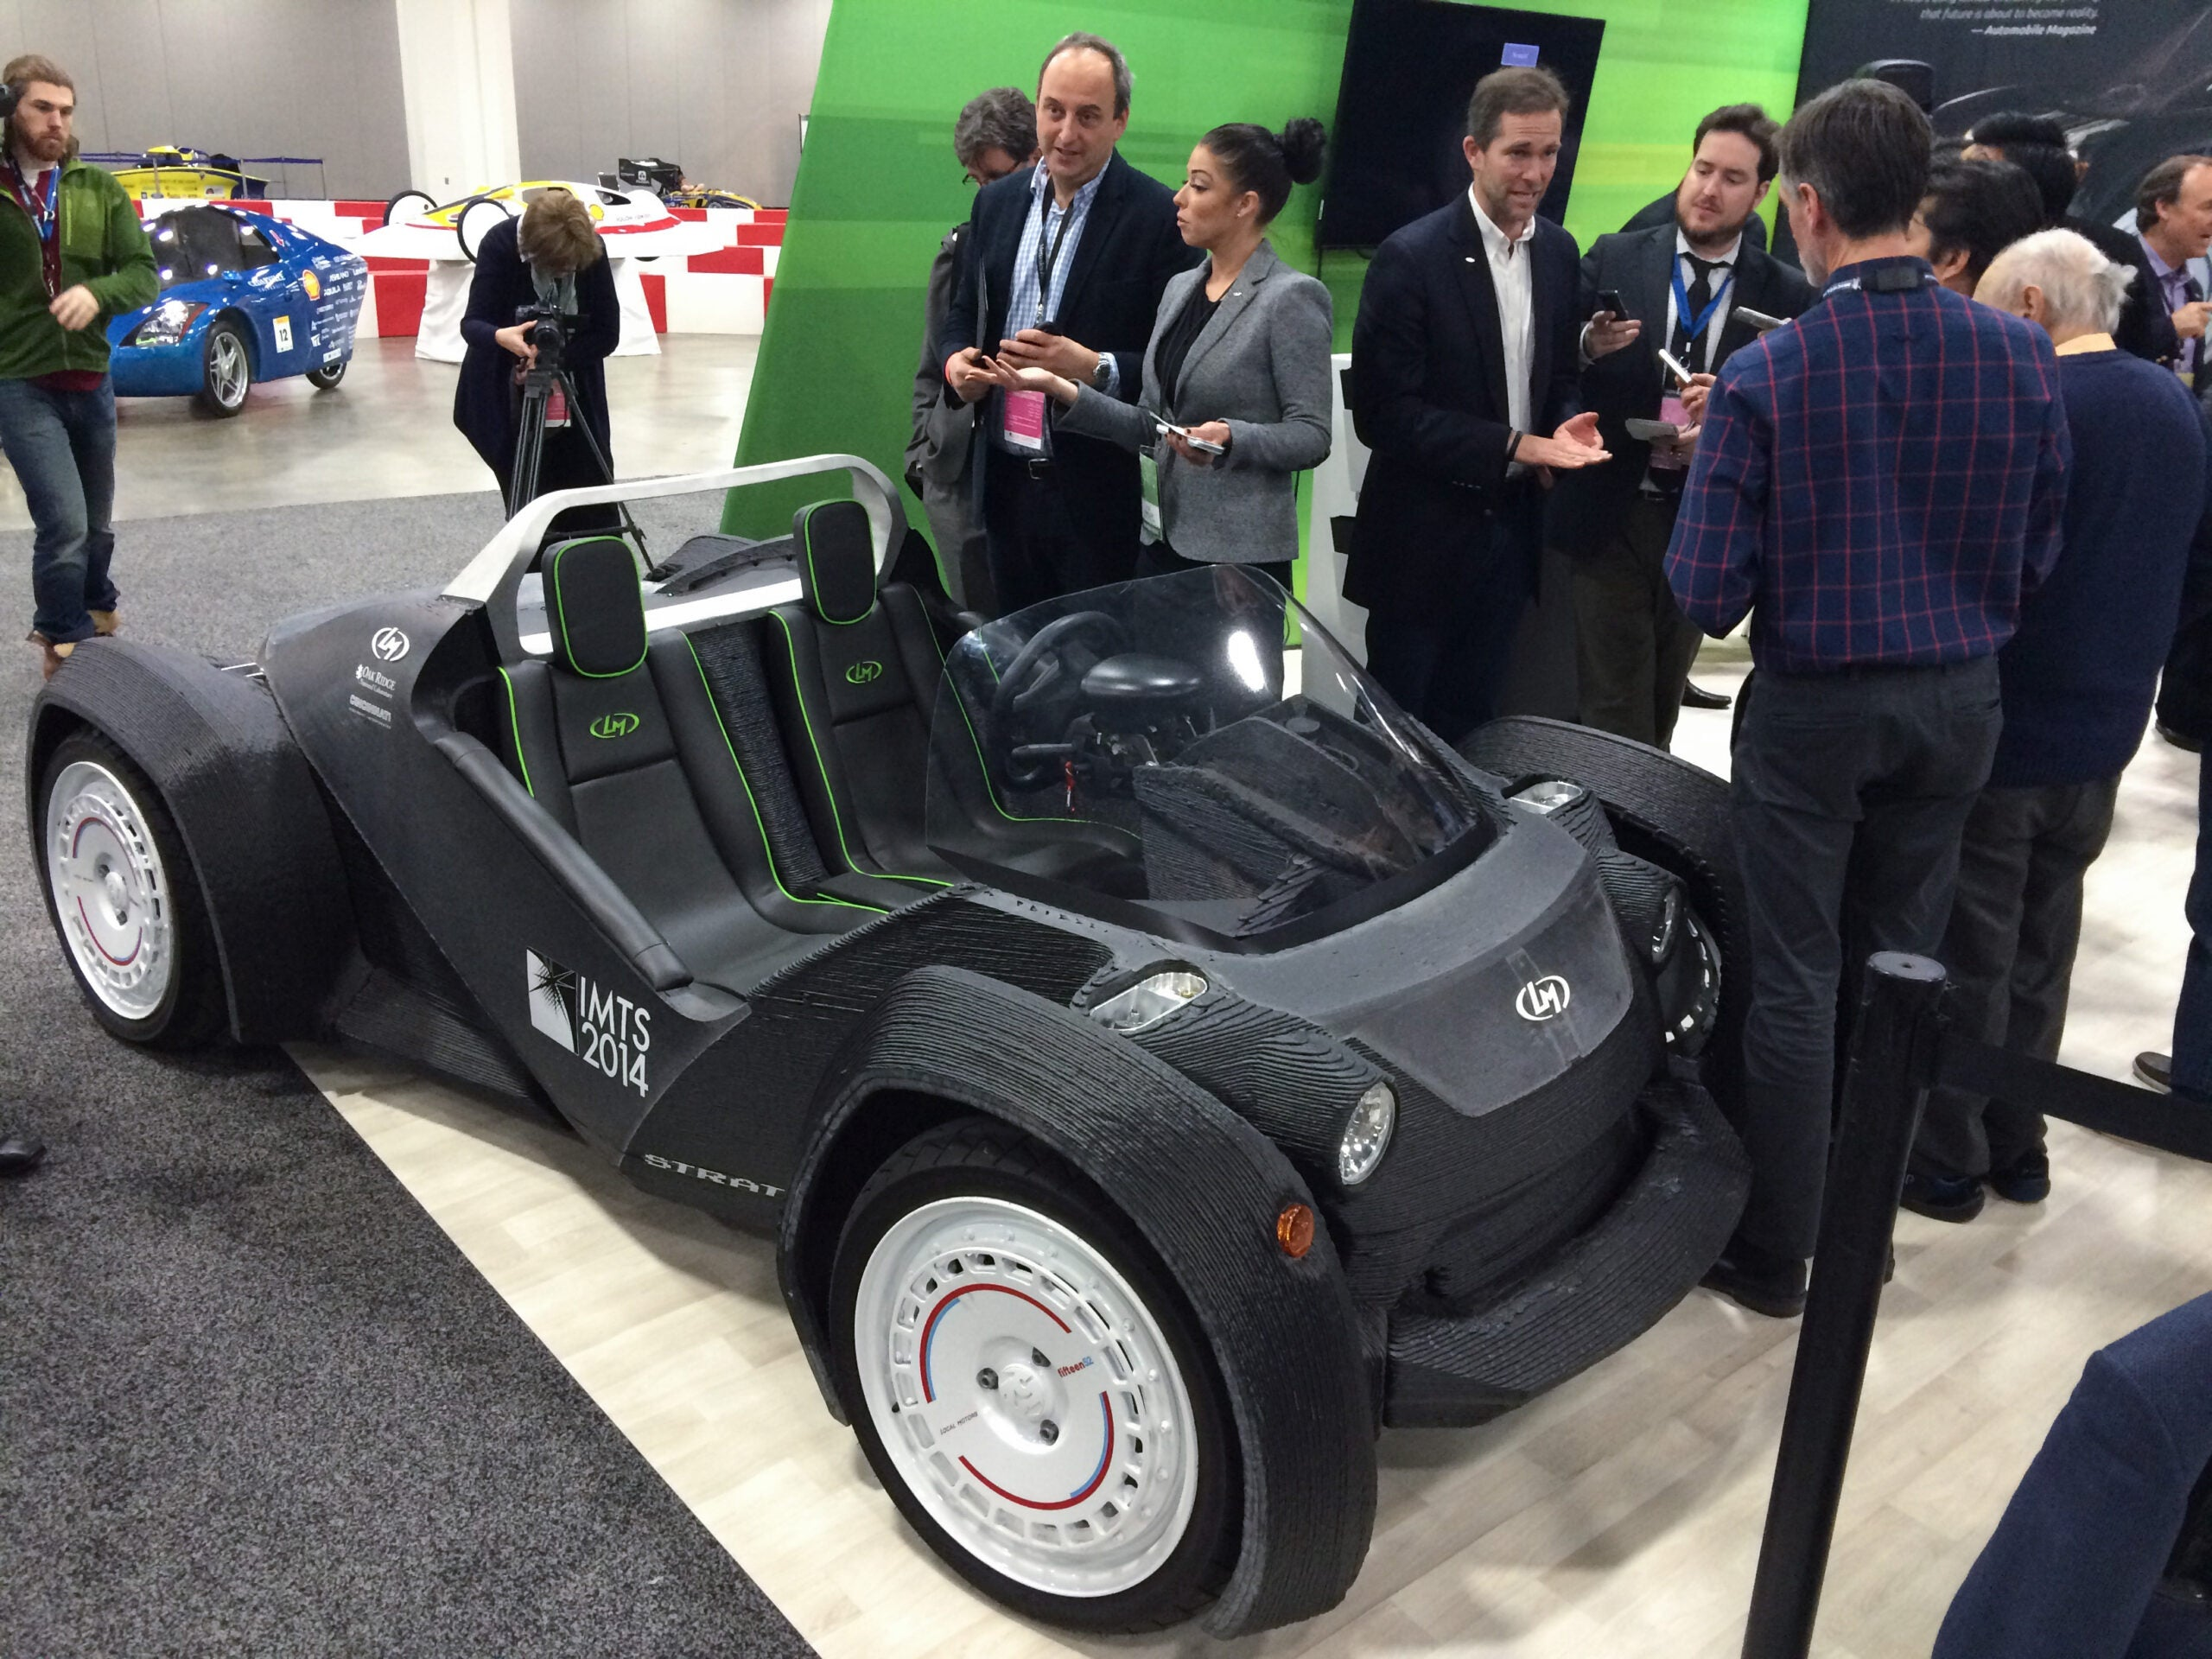 2015 Detroit Auto Show: You Might Be Able To Buy 3-D–Printed Cars In A Year